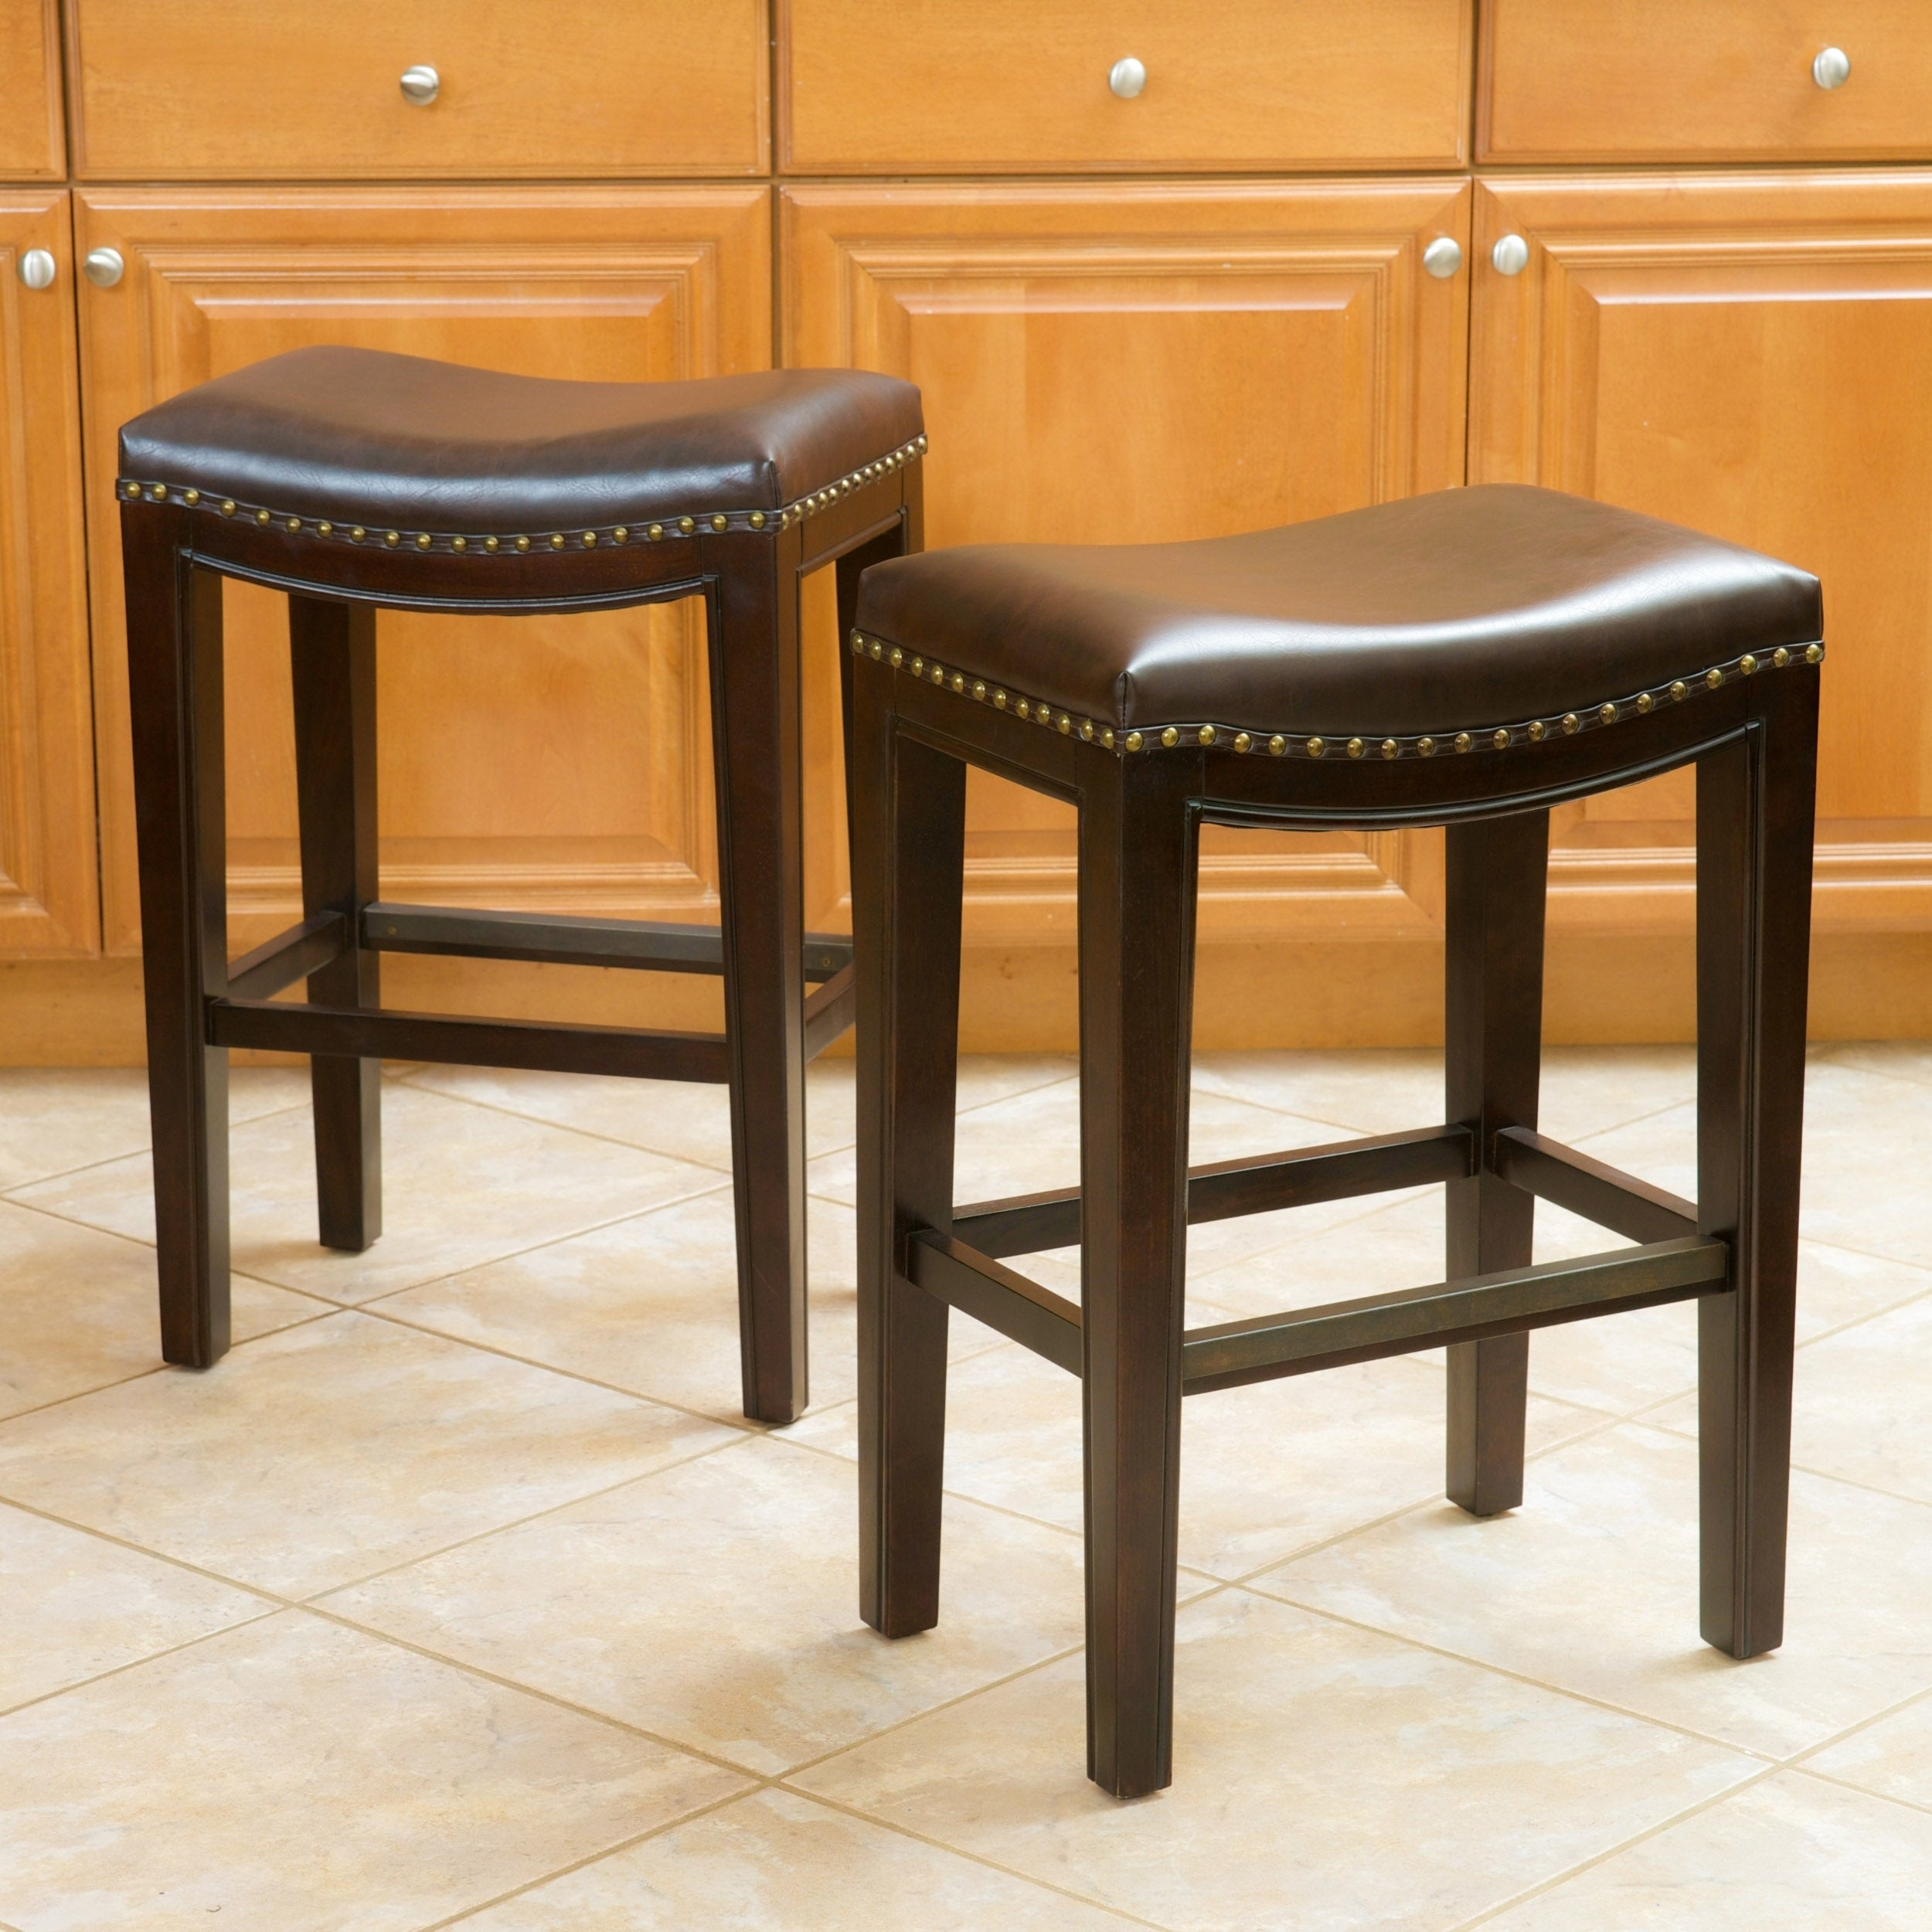 Phenomenal Avondale 26 Inch Brown Bonded Leather Backless Counter Stool Set Of 2 By Christopher Knight Home Gmtry Best Dining Table And Chair Ideas Images Gmtryco